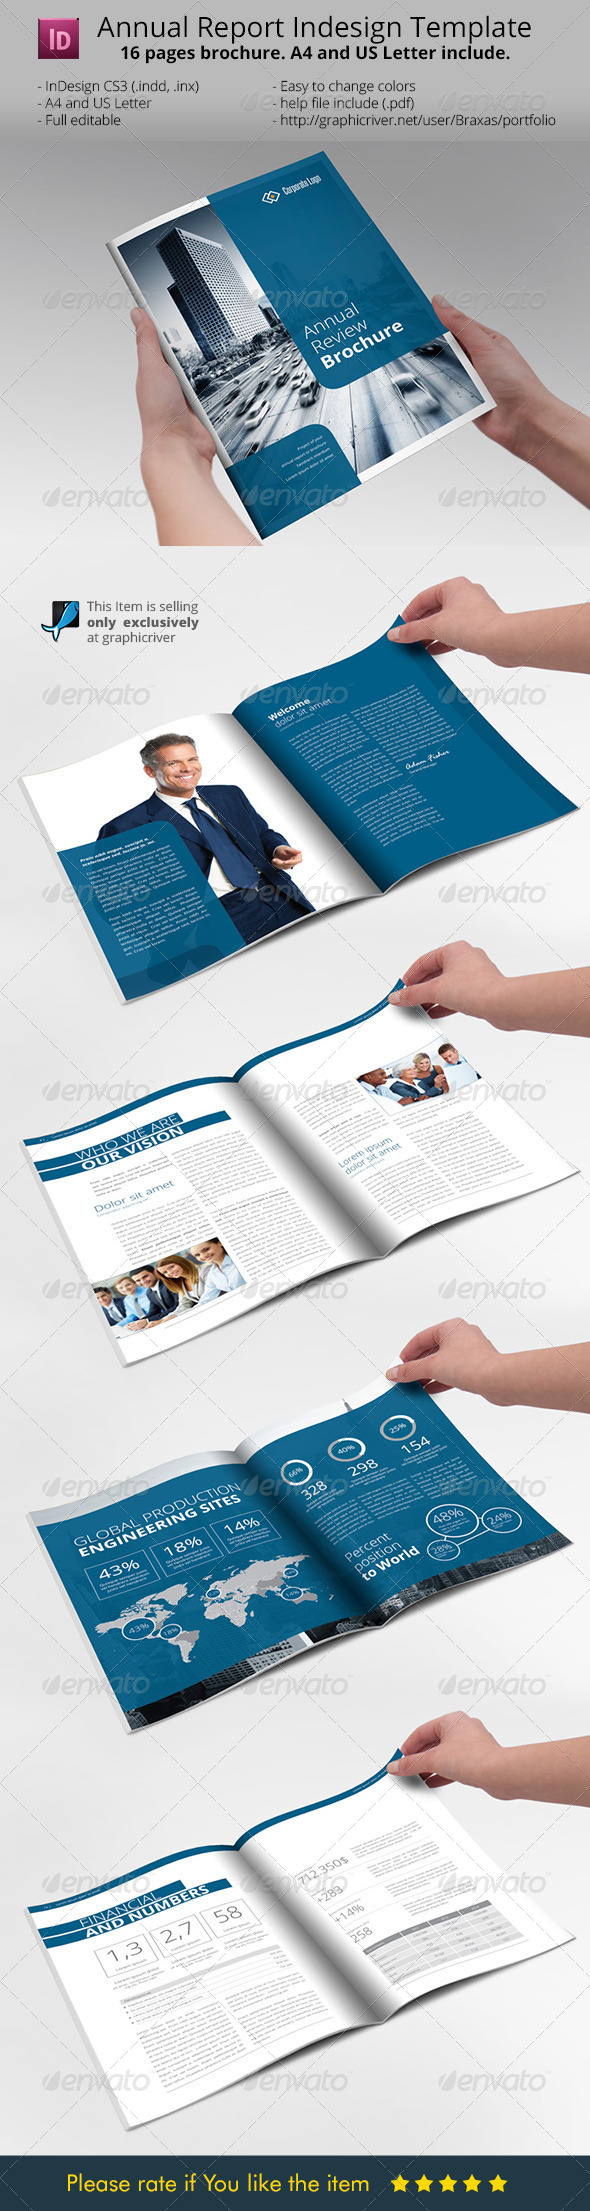 template brochure indesign - modern annual report with indesign free download